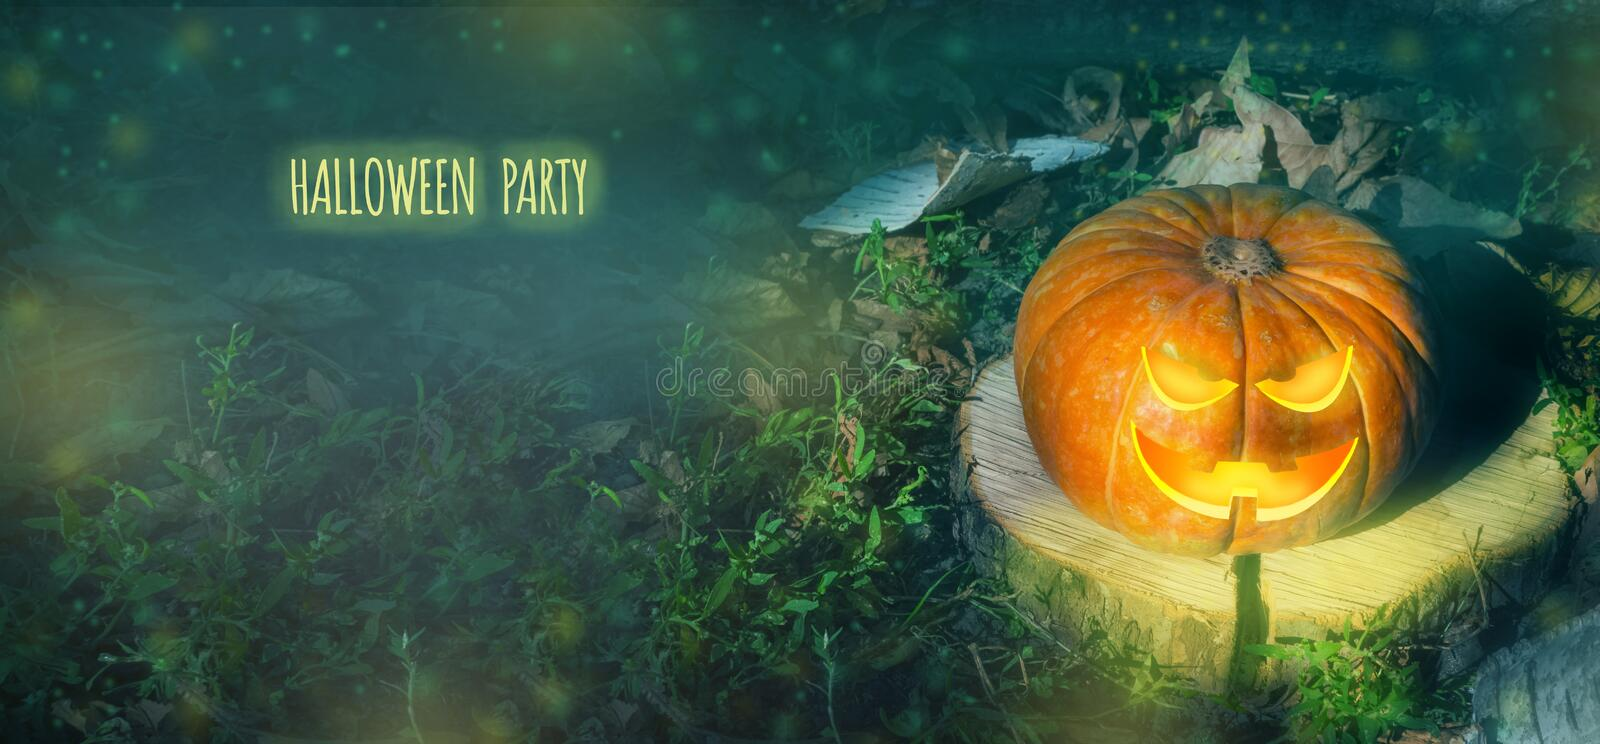 Halloween pumpkin on the ground at night in a mystical forest. Halloween background. Sinister eyes of pumpkins. Halloween party. Autumn festival. Magic.place royalty free stock photos